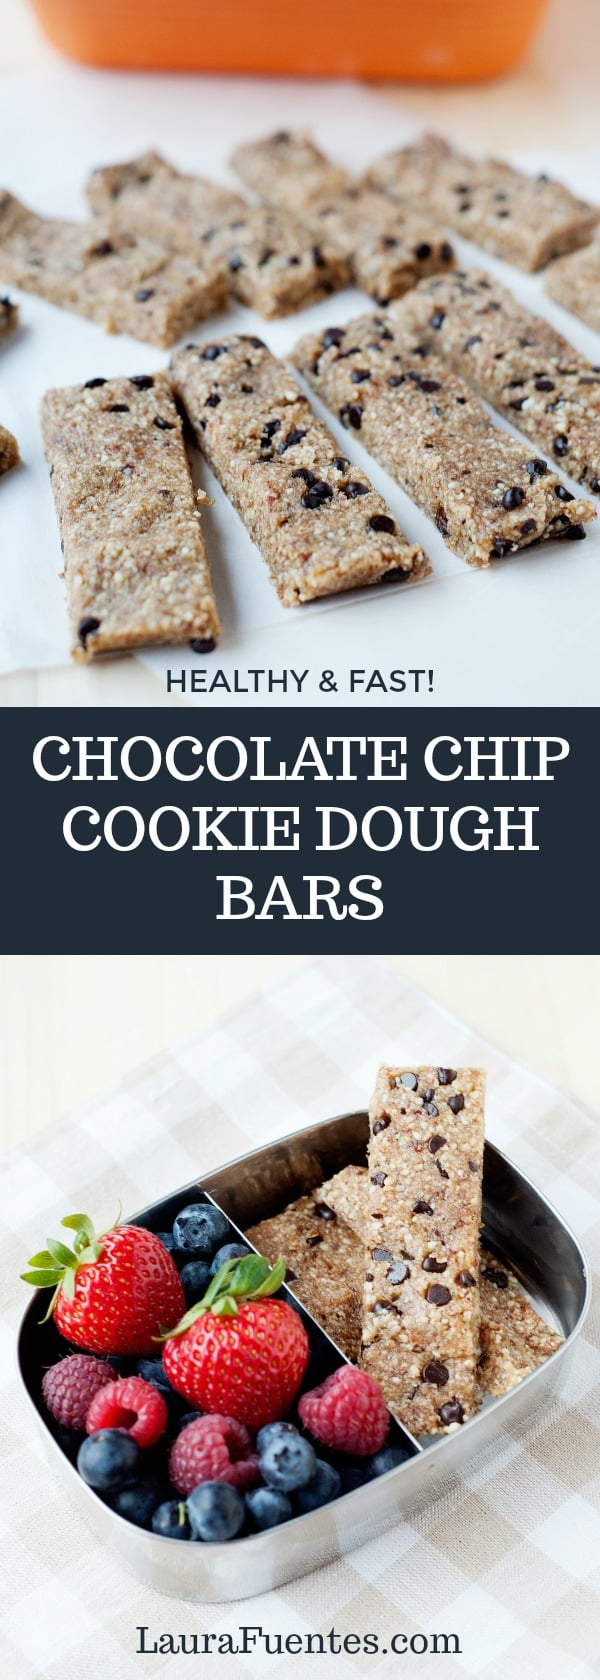 Easy to make and deliciously healthy chocolate chip cookie dough bars recipe